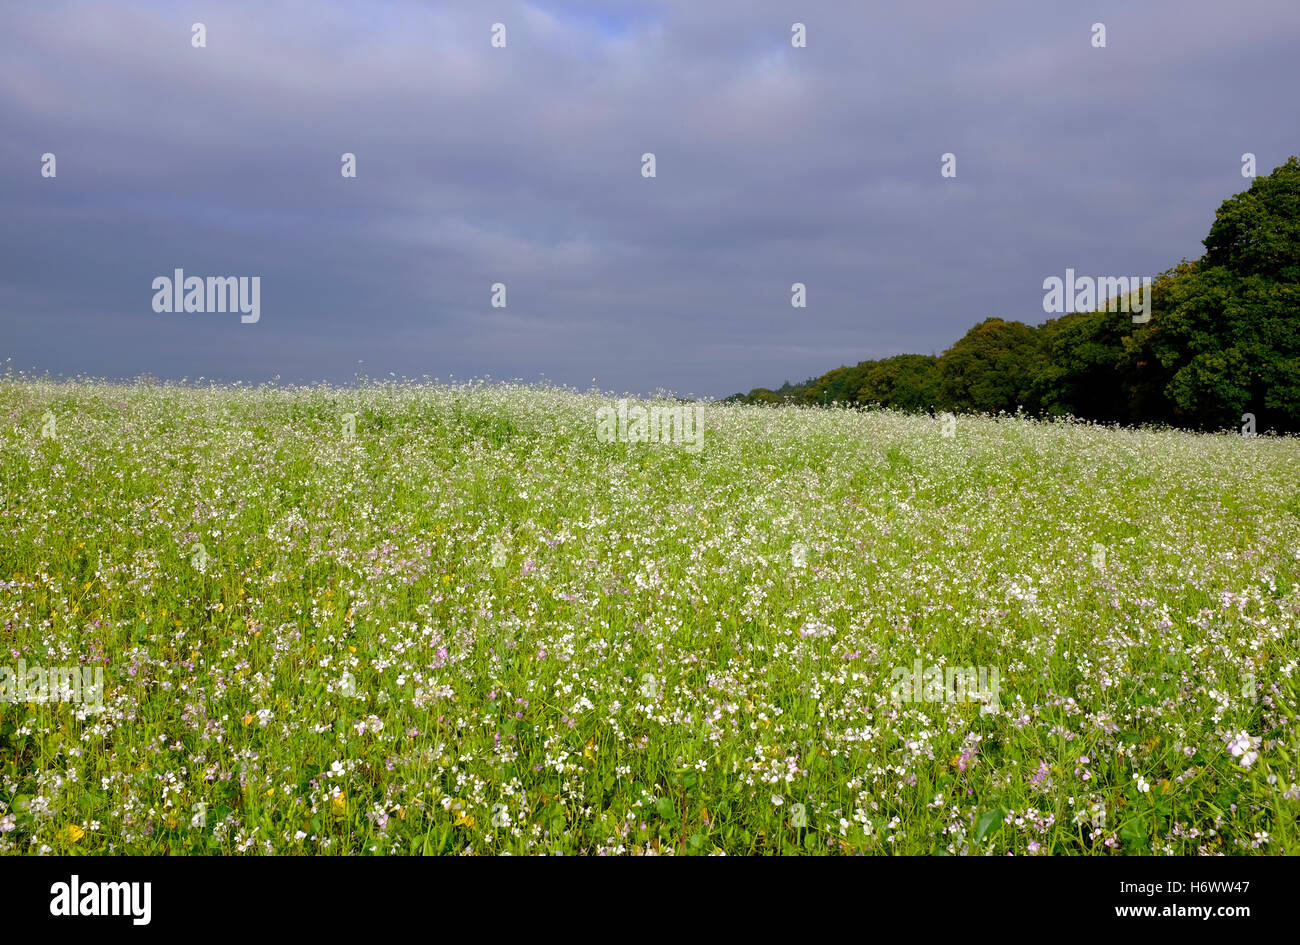 oil radish crop growing in field, norfolk, england - Stock Image